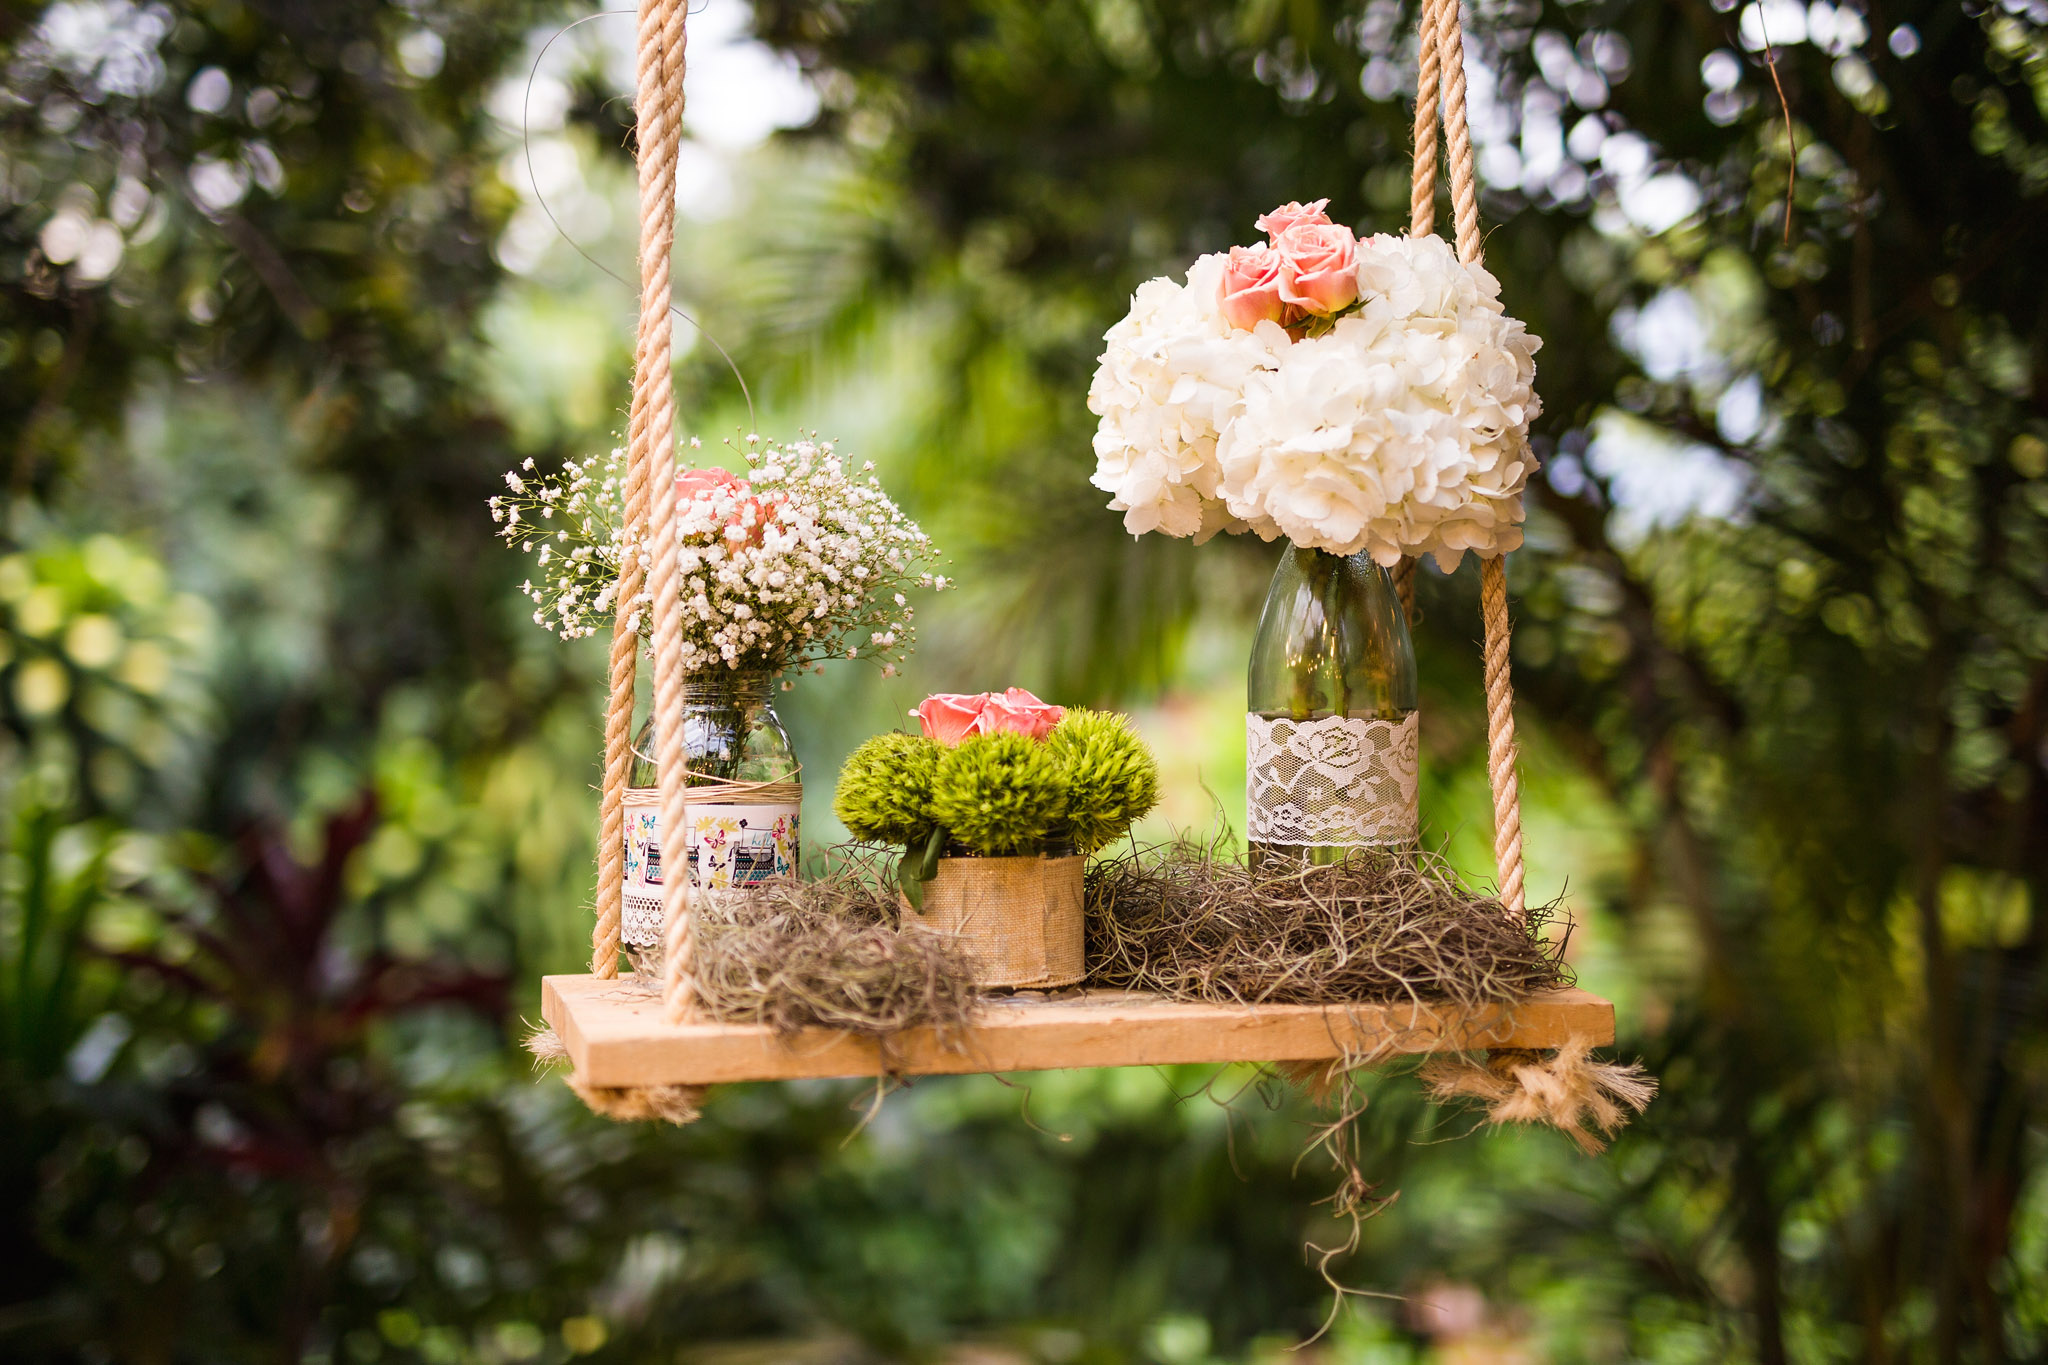 wedding-travellers-destination-wedding-photography-colombia-medellin-chuscalito-decoration-white-pink-rose-swing